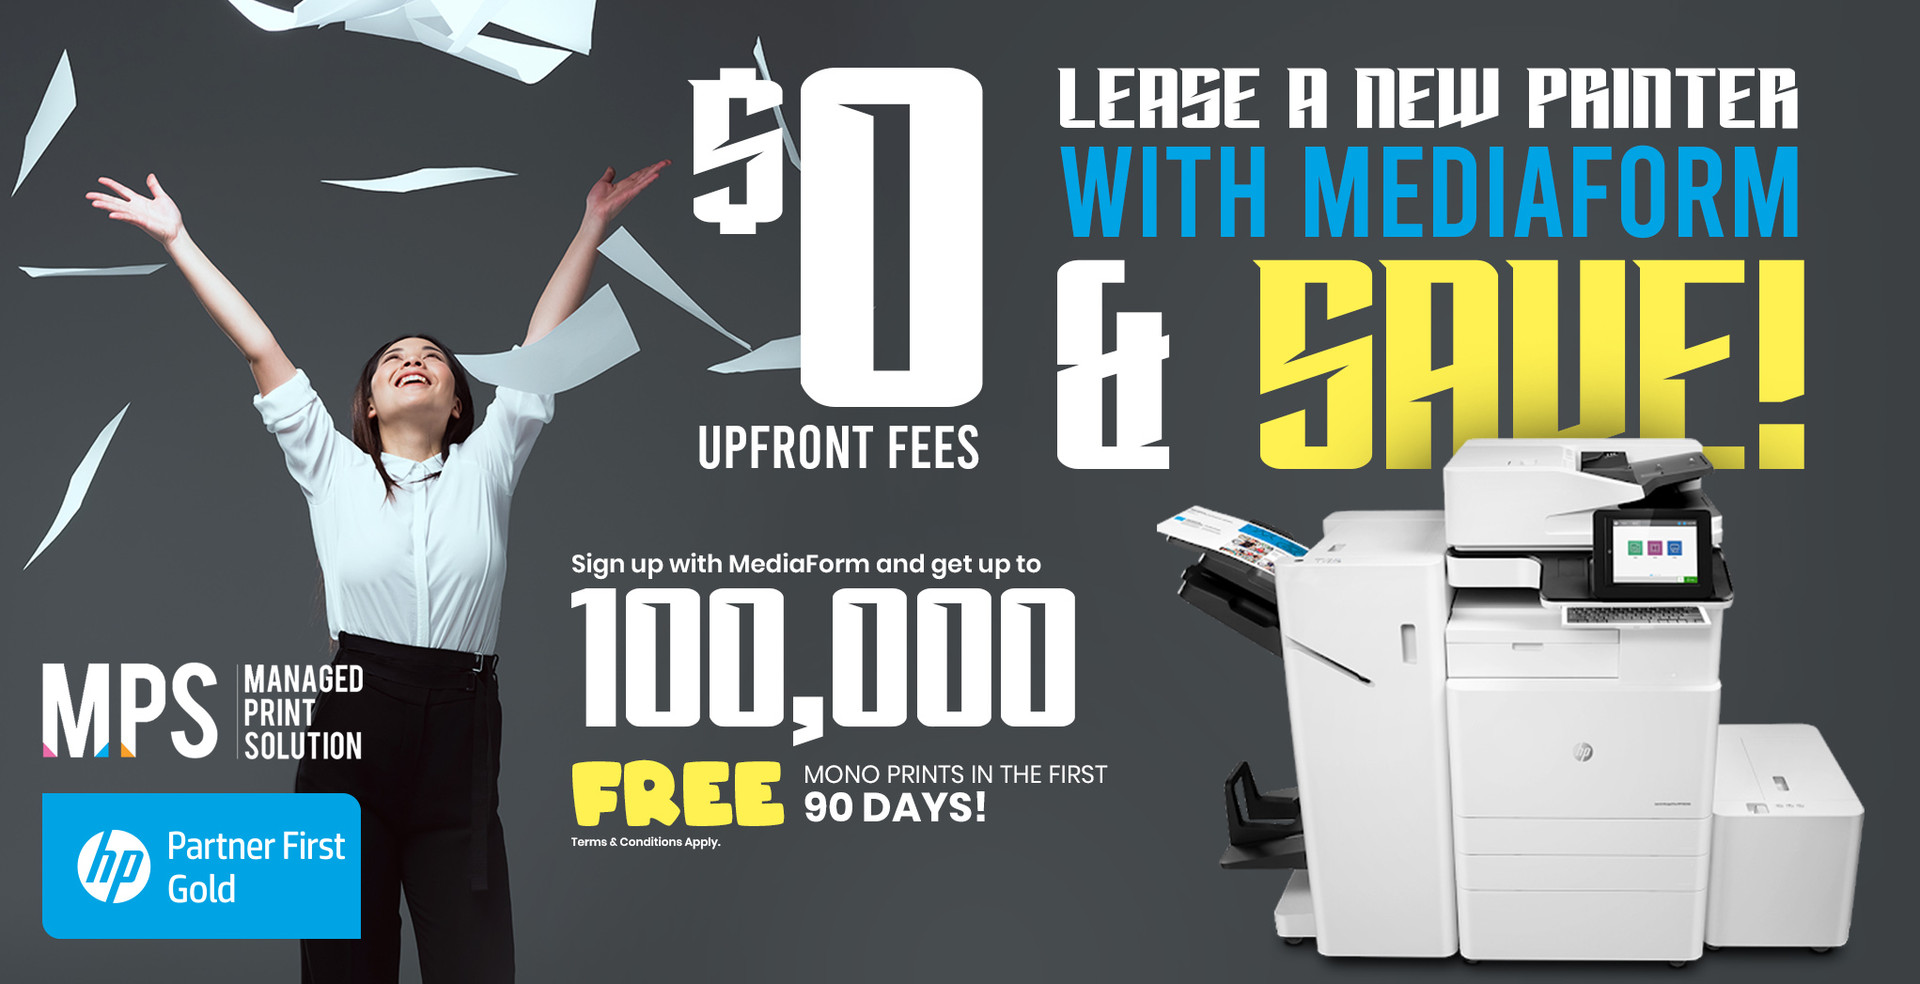 $0 Upfront MPS with MediaForm + 100,000 Free Mono Prints